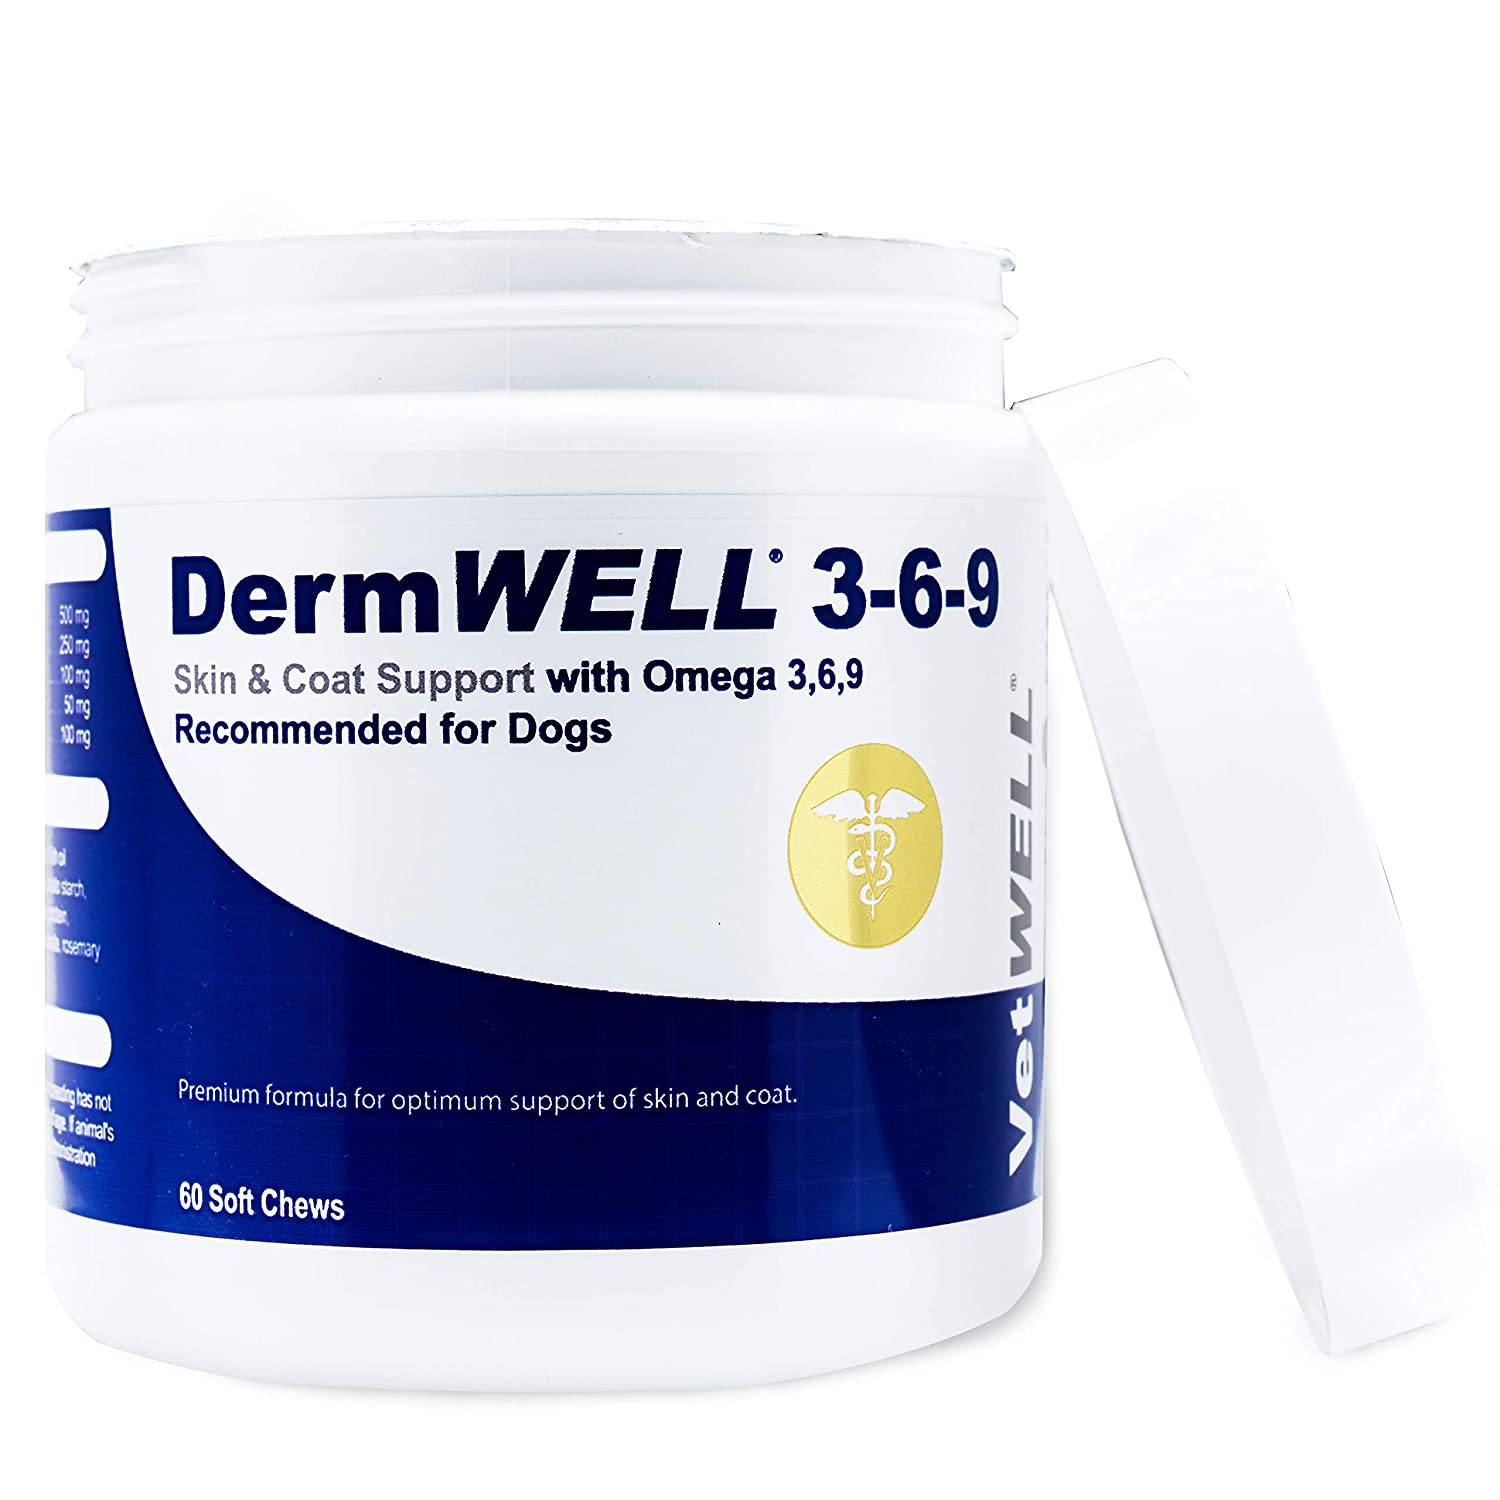 VetWELL Omega 3 6 9 for Dogs - Dry Skin Treatment for Dogs, Helps Relieve Itching Skin, Allergy Symptoms and Improves Coat - DermWELL Omega 3-6-9 Fish Oil Soft Chews - 60 Count